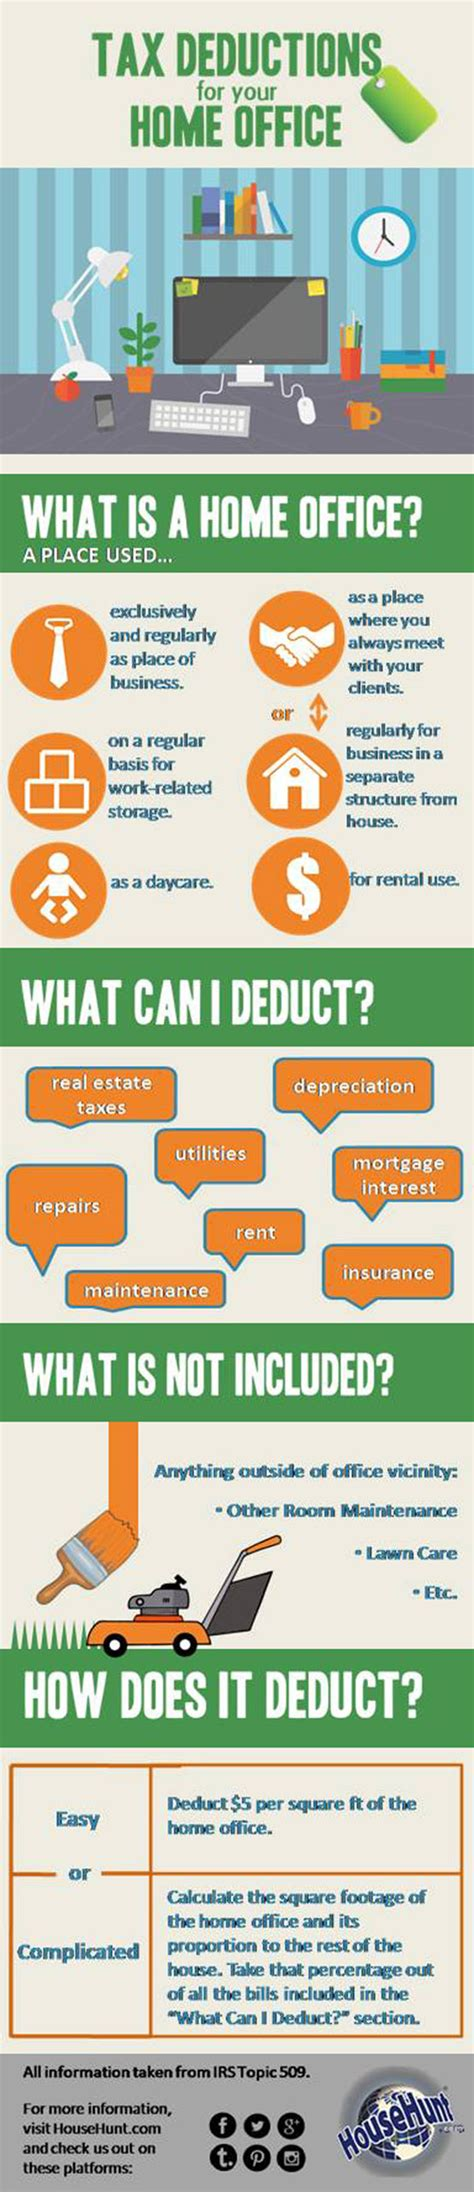 buy house tax deduction tax deduction for buying a house 28 images tax deductions for buying a home home